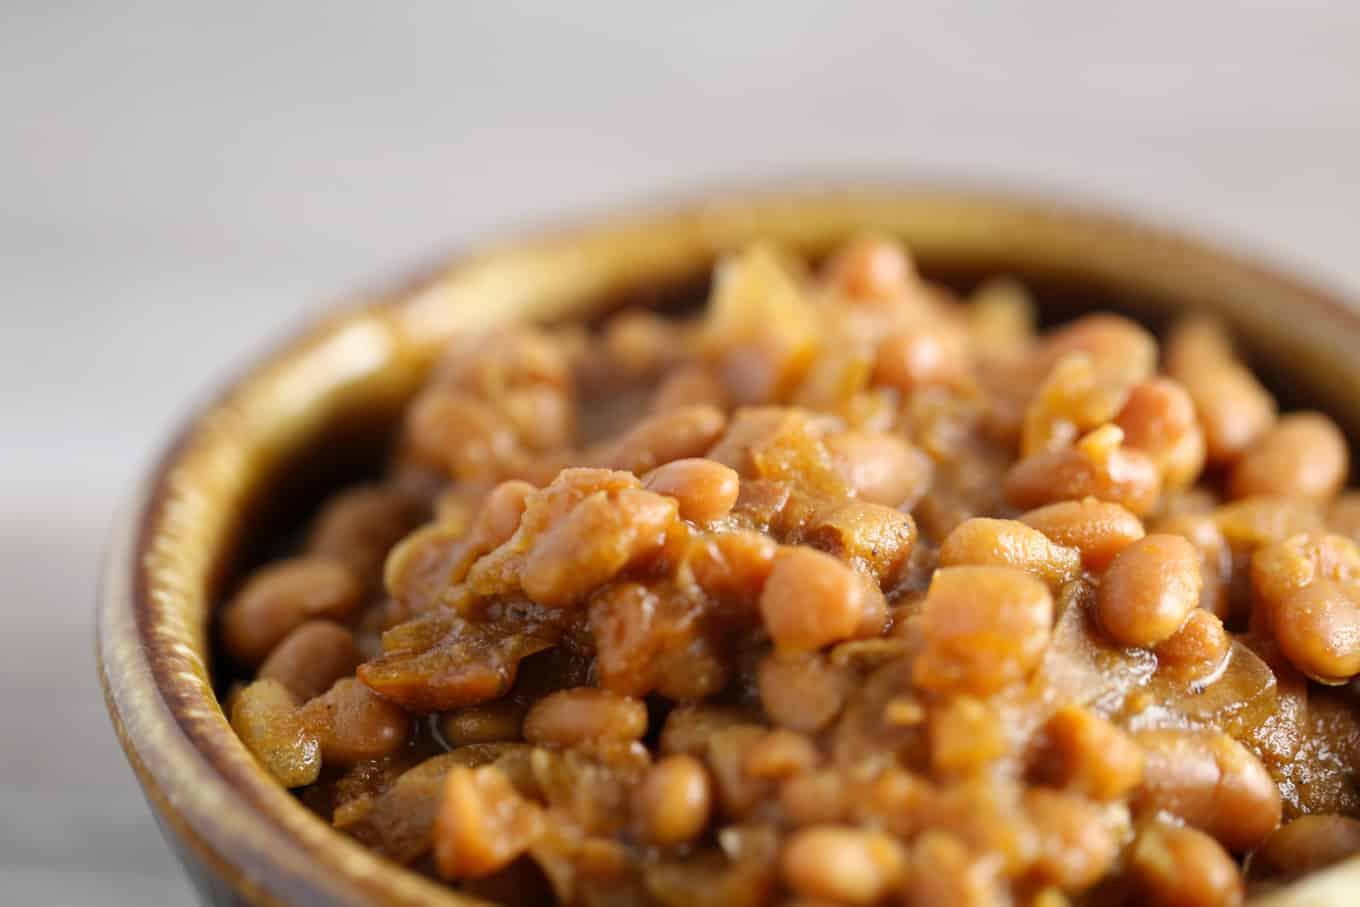 vegan Boston baked beans